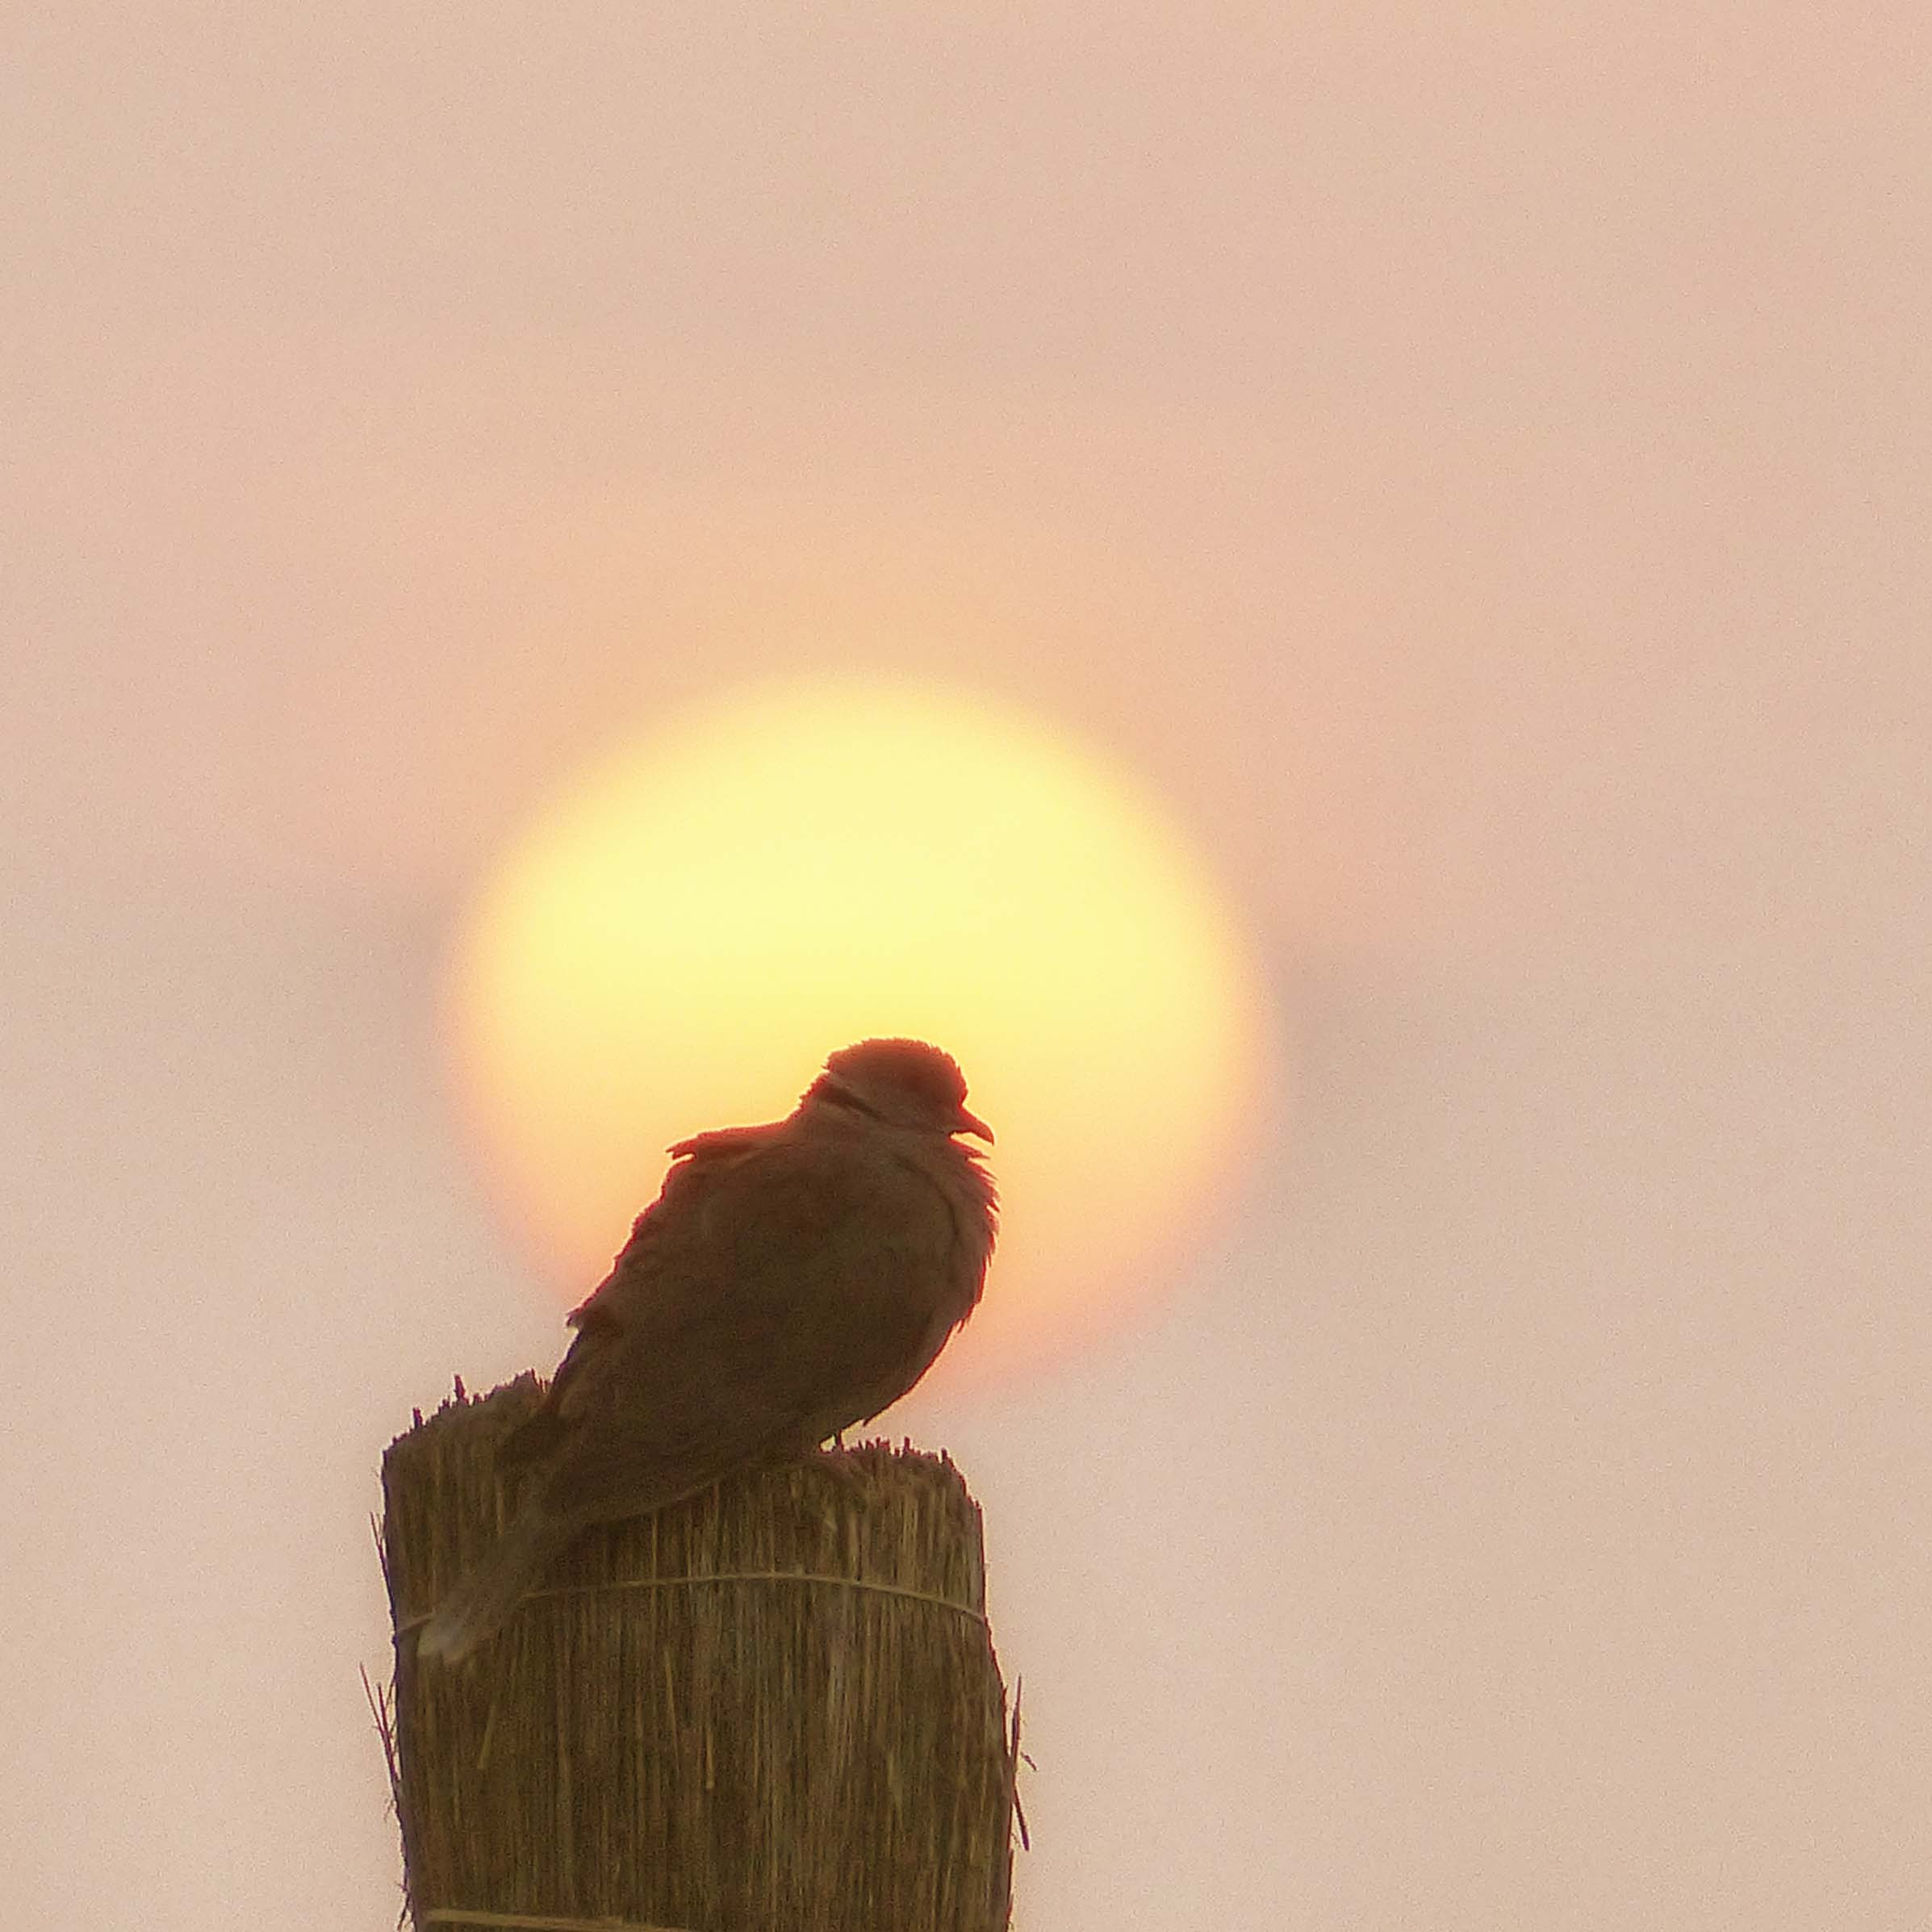 Pigeon on a post with rising sun